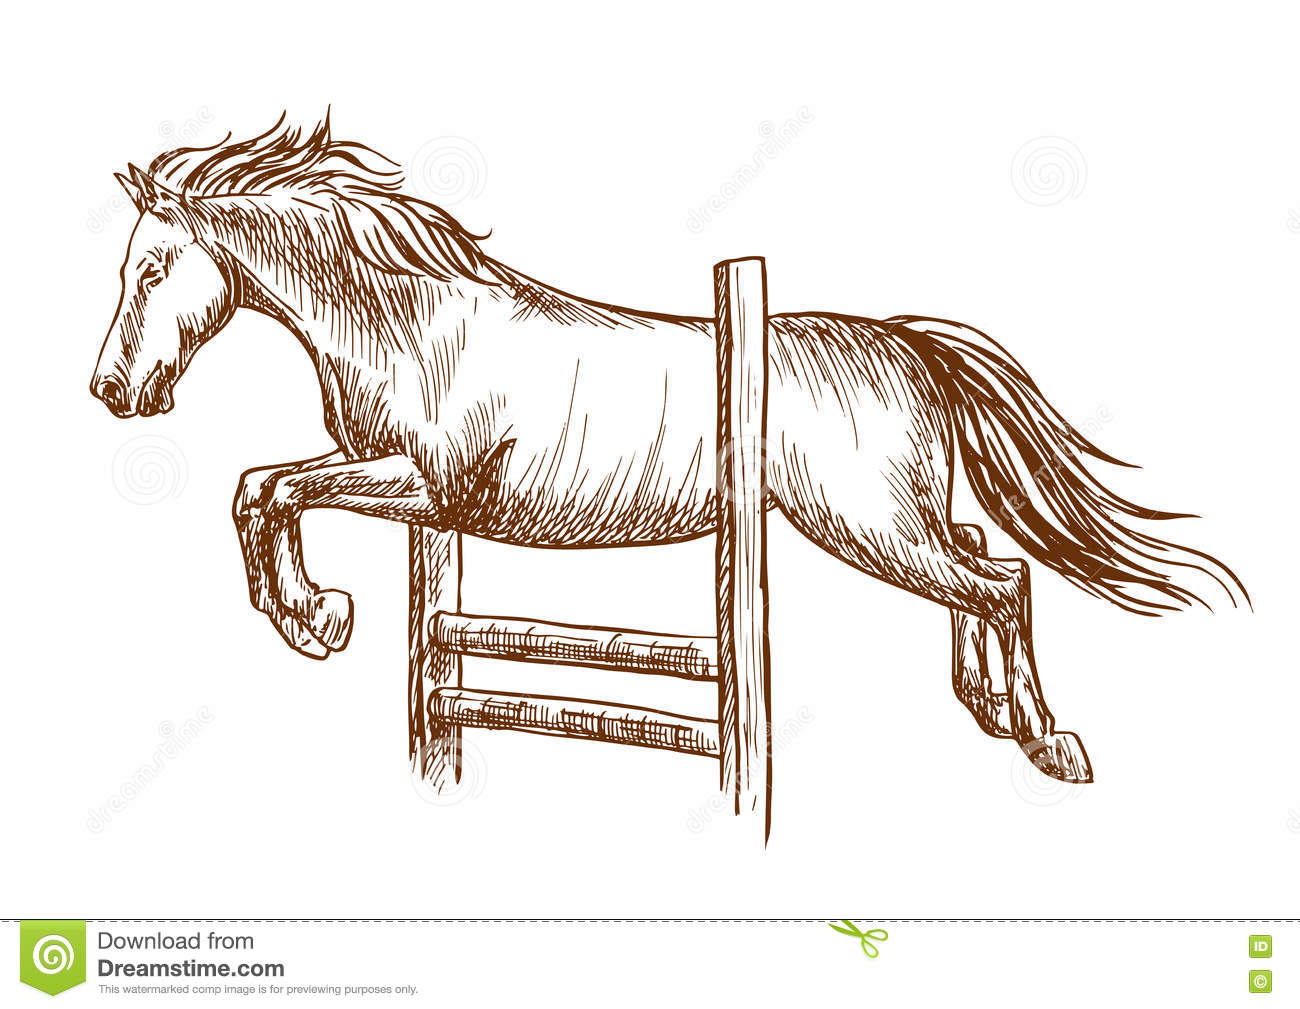 Wild Horse Jumping Over Barrier Stock Vector Illustration Of Hopping Racing 77836616